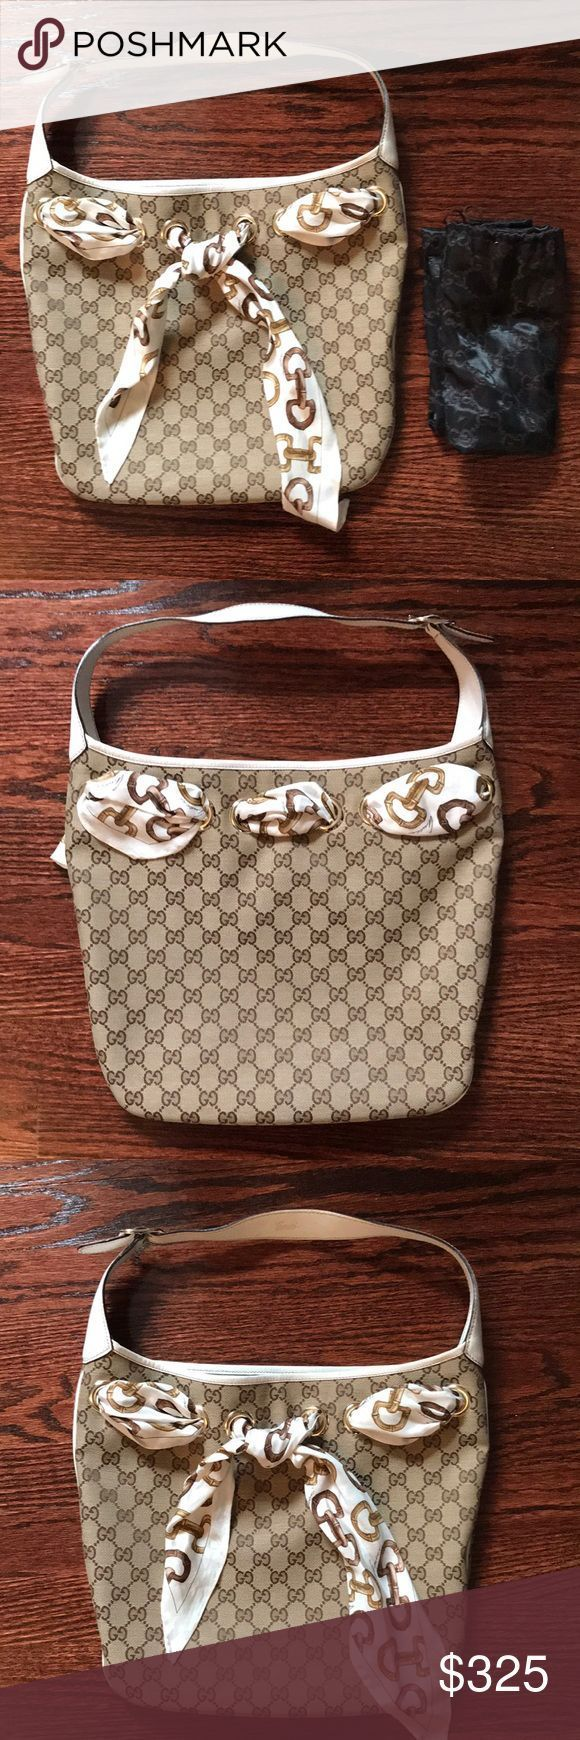 Gucci Monogrammed White Leather Bag Bamboo Scarf Authentic Gucci Monogrammed S Gucci Monogrammed White Leather Bag Bamboo Scarf Authentic Gucci Monogrammed S